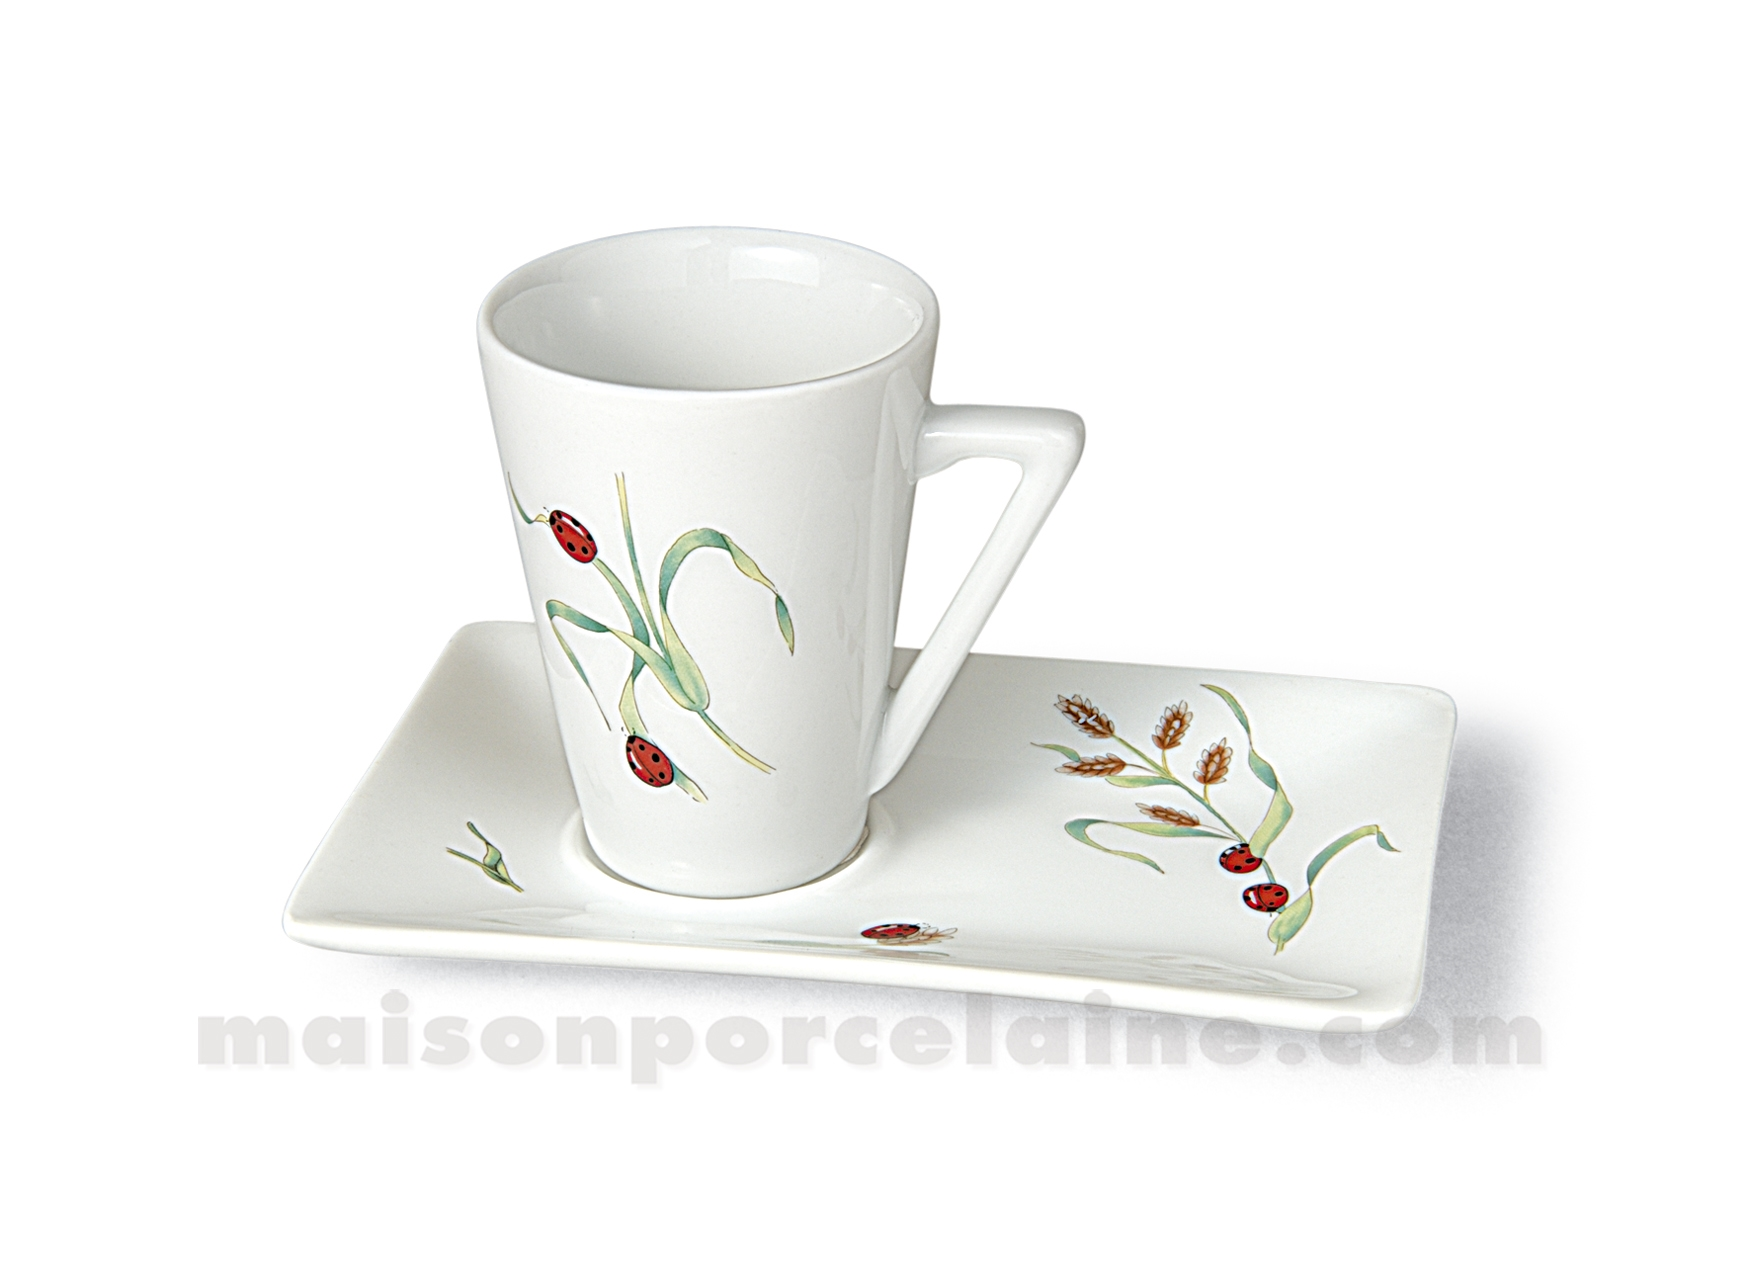 Tasse Cafe Conique Soucoupe Rectangulaire 7cl Maison De